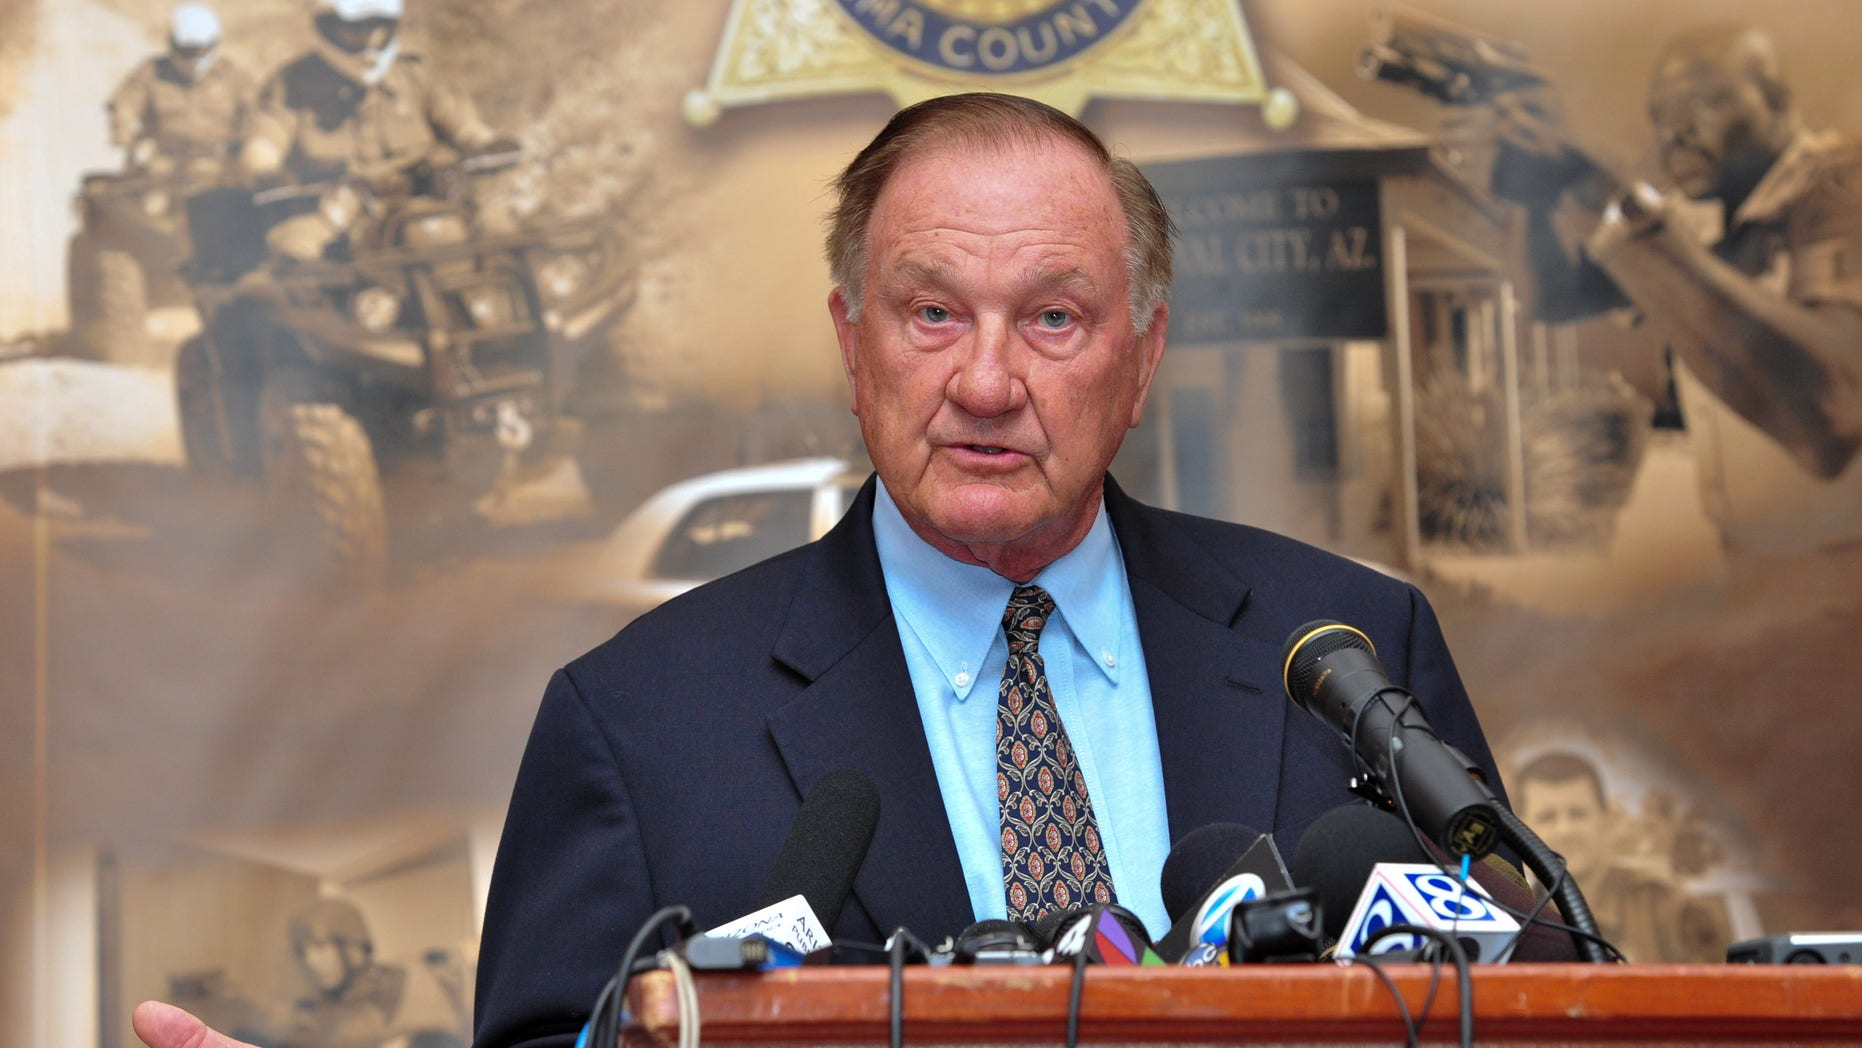 Sunday: Pima County Sheriff Clarence Dupnik speaks at a news conference in Tucson, Ariz., a day after a shooting injured or killed 20 people, including a federal judge. Rep. Gabrielle Giffords survived the shooting and was in critical condition following brain surgery.